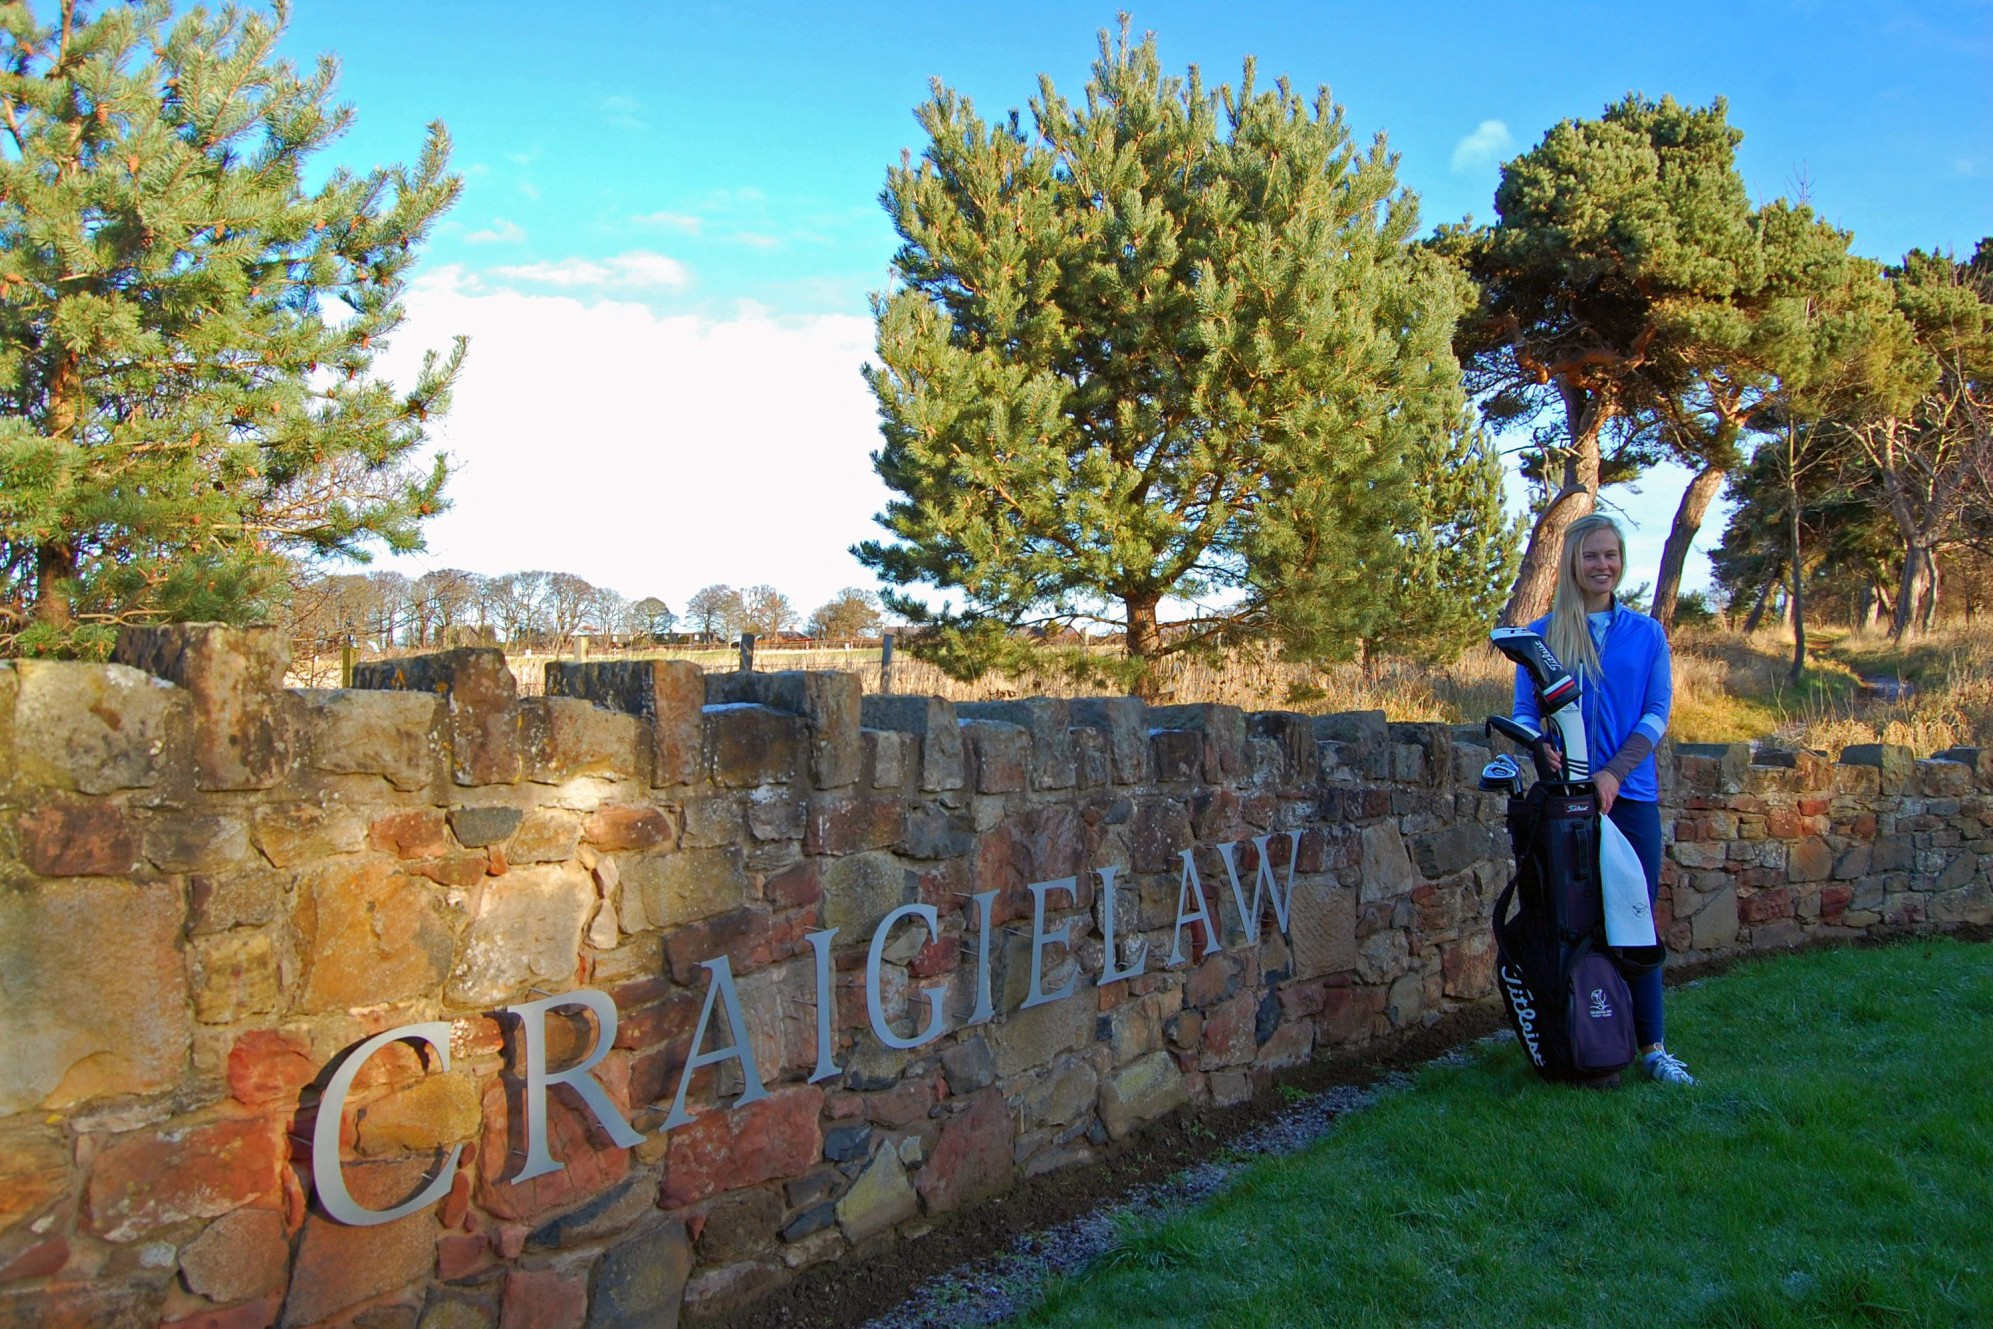 Gabrielle Macdonald at Craigielaw Golf Club